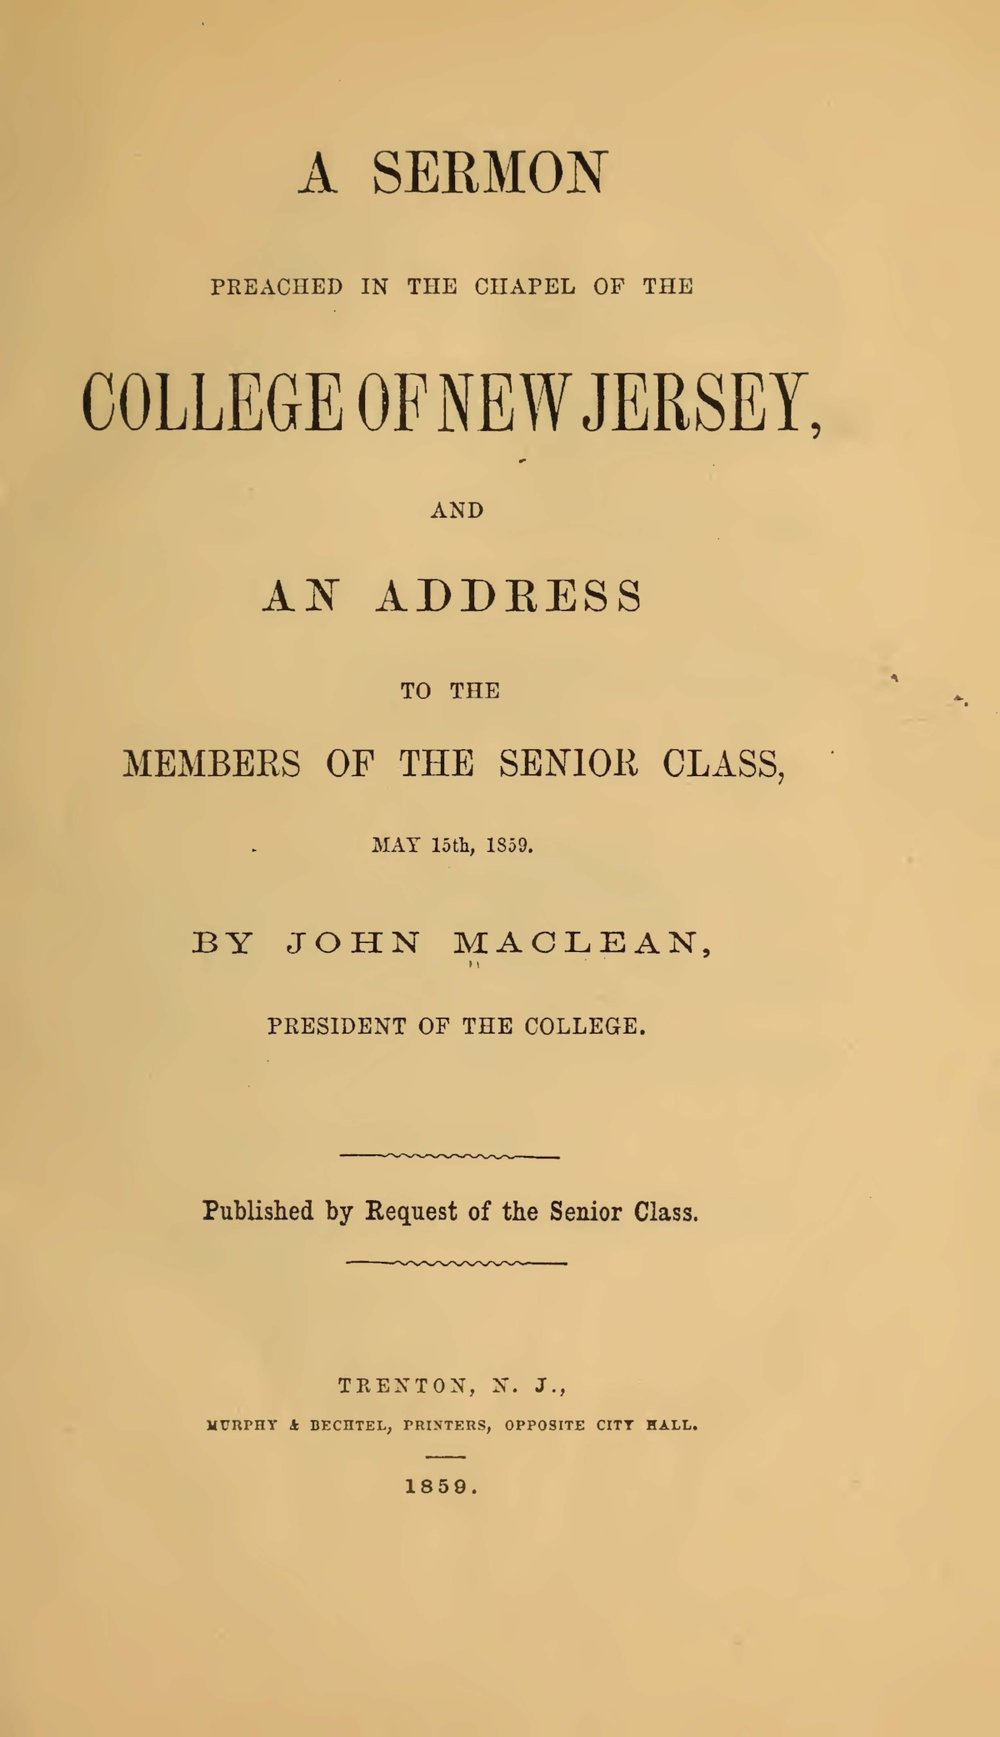 Maclean, John, Jr., A Sermon Preached in the Chapel of the College of New Jersey Title Page.jpg